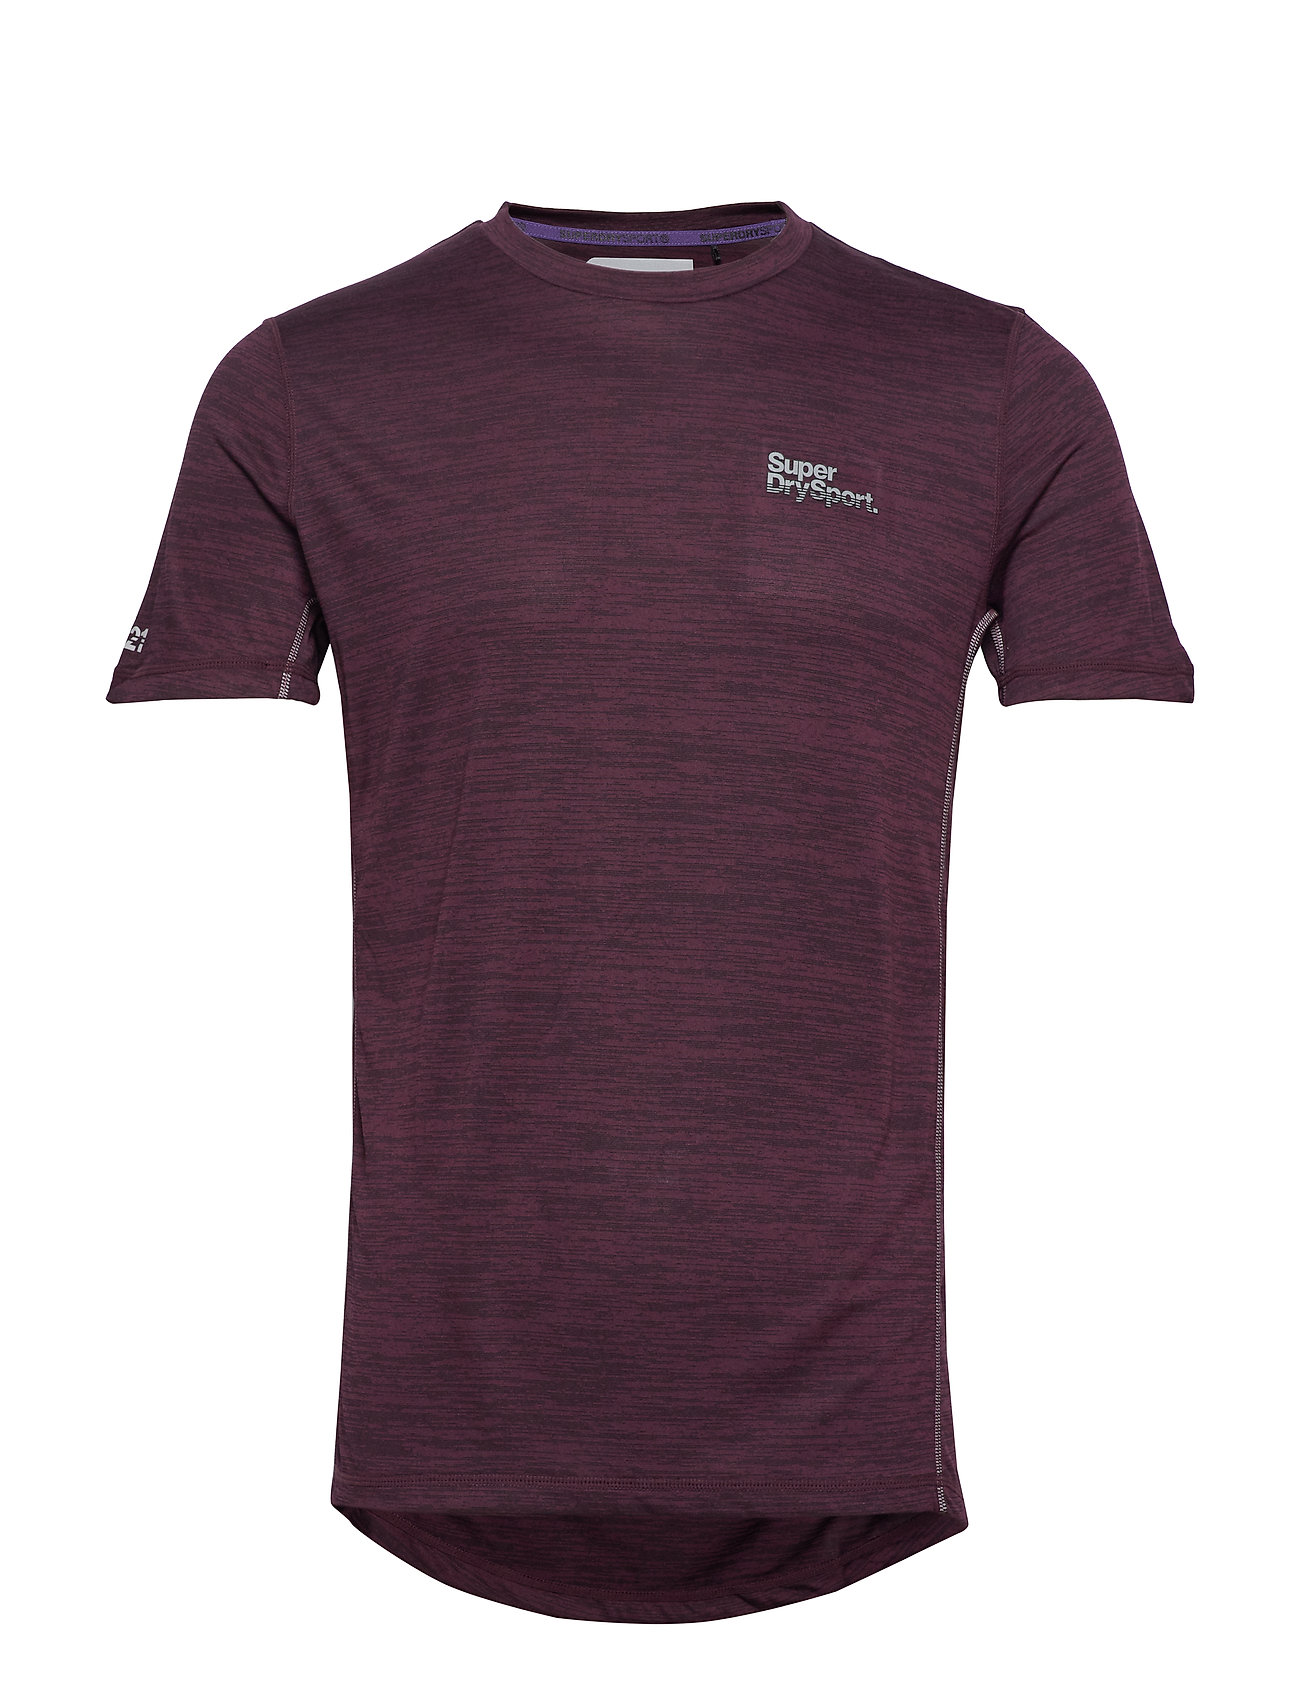 Superdry ACTIVE TRAINING S/S TEE - FIG MARL SPACE DYE